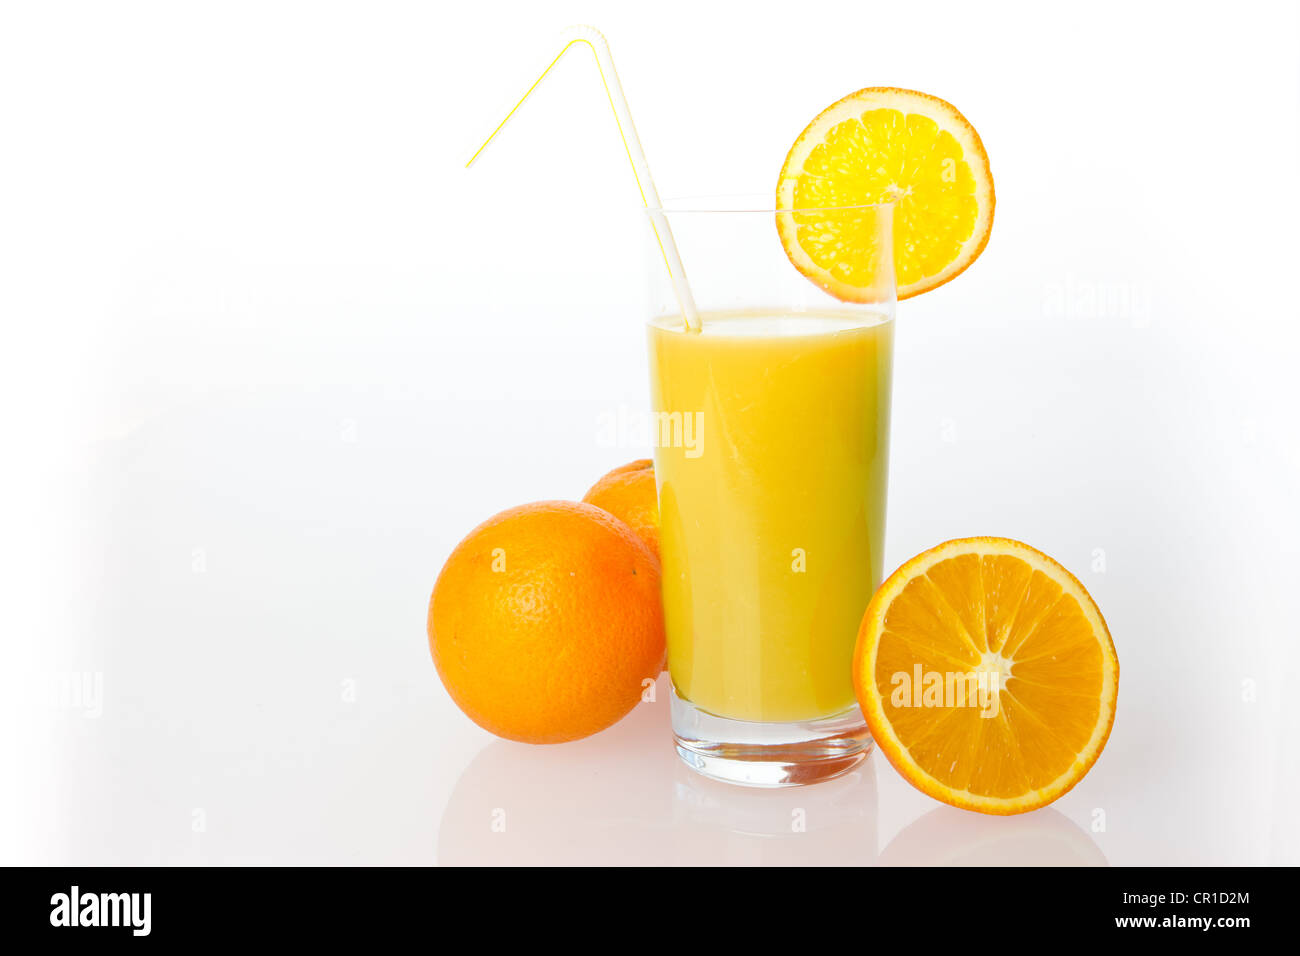 Oranges and orange juice in a glass - Stock Image